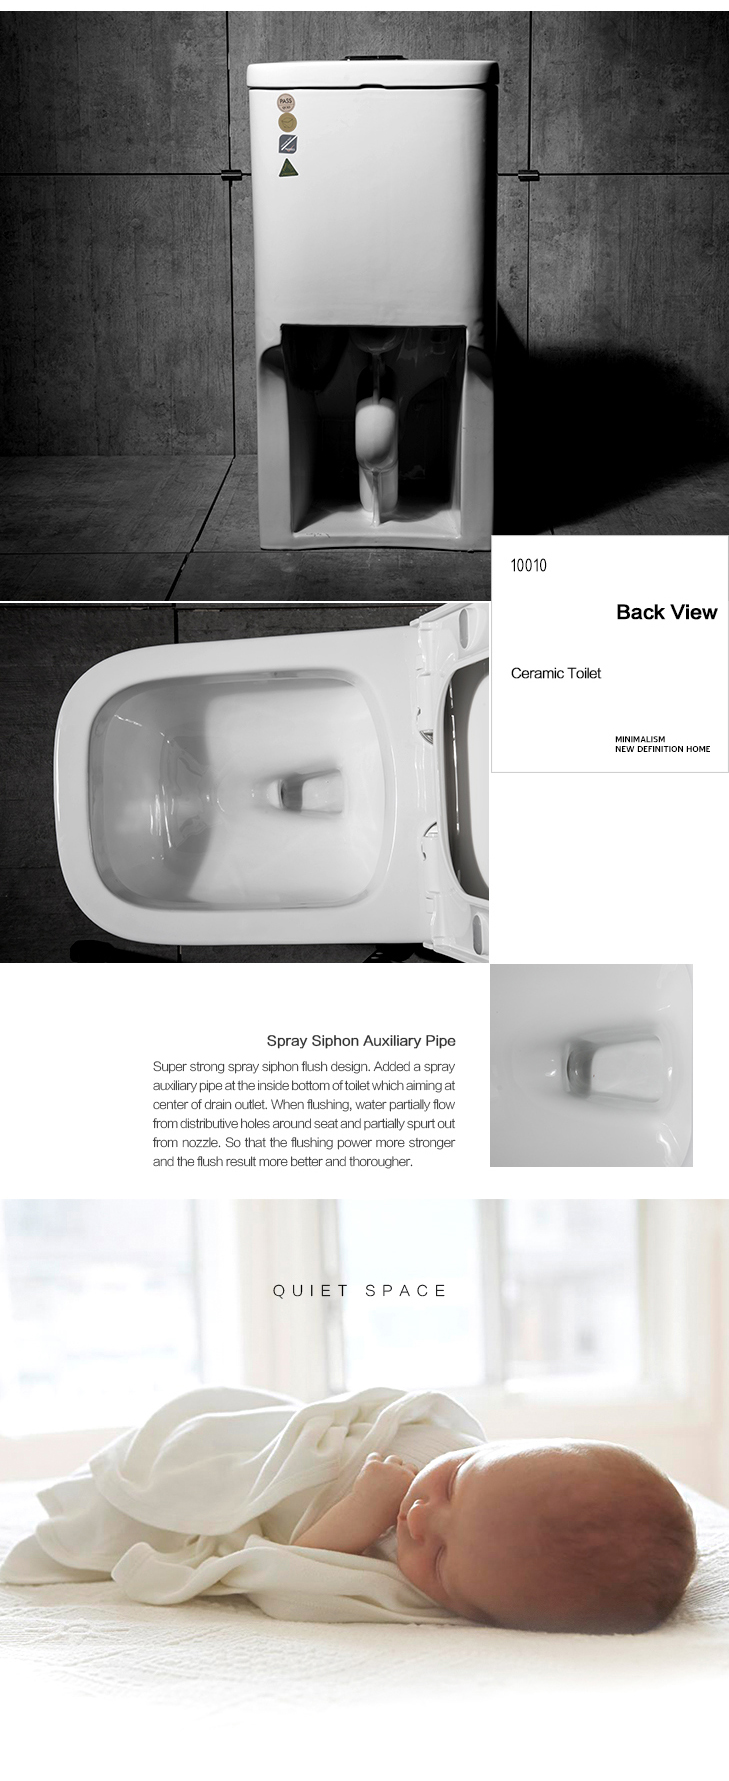 Outdoor White Colored Toilet For The Elderly